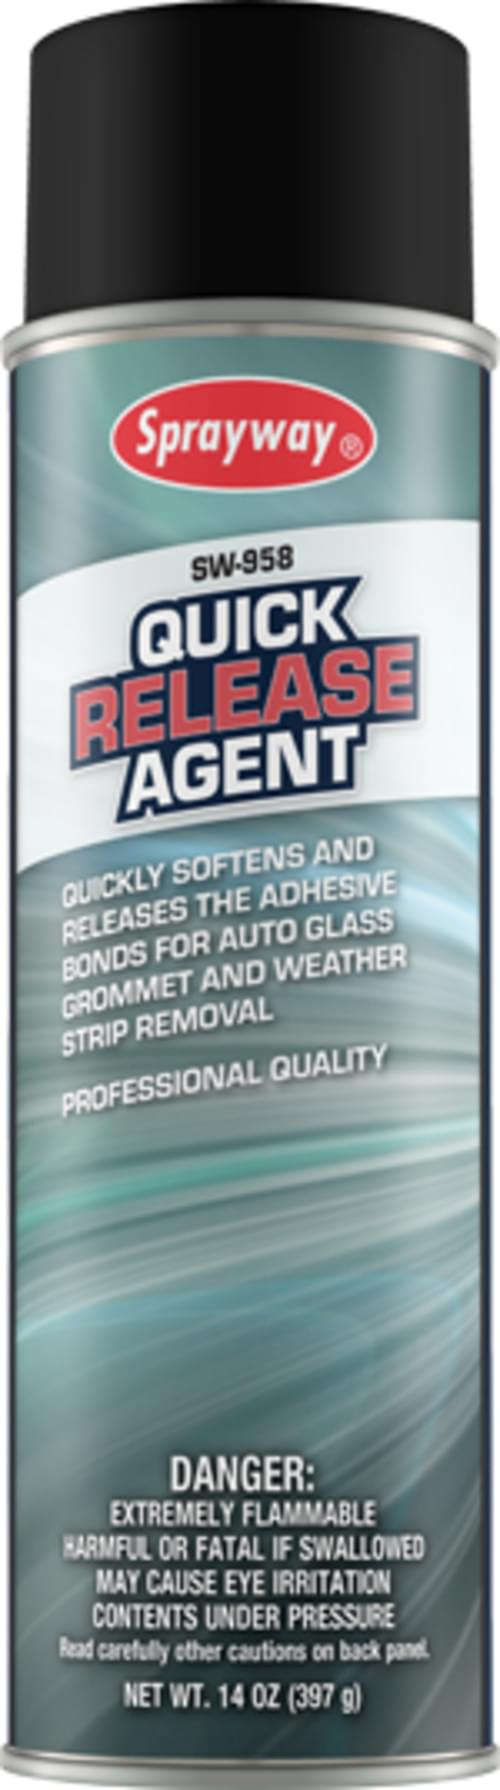 20 oz. Auto Glass Quick Release Agent